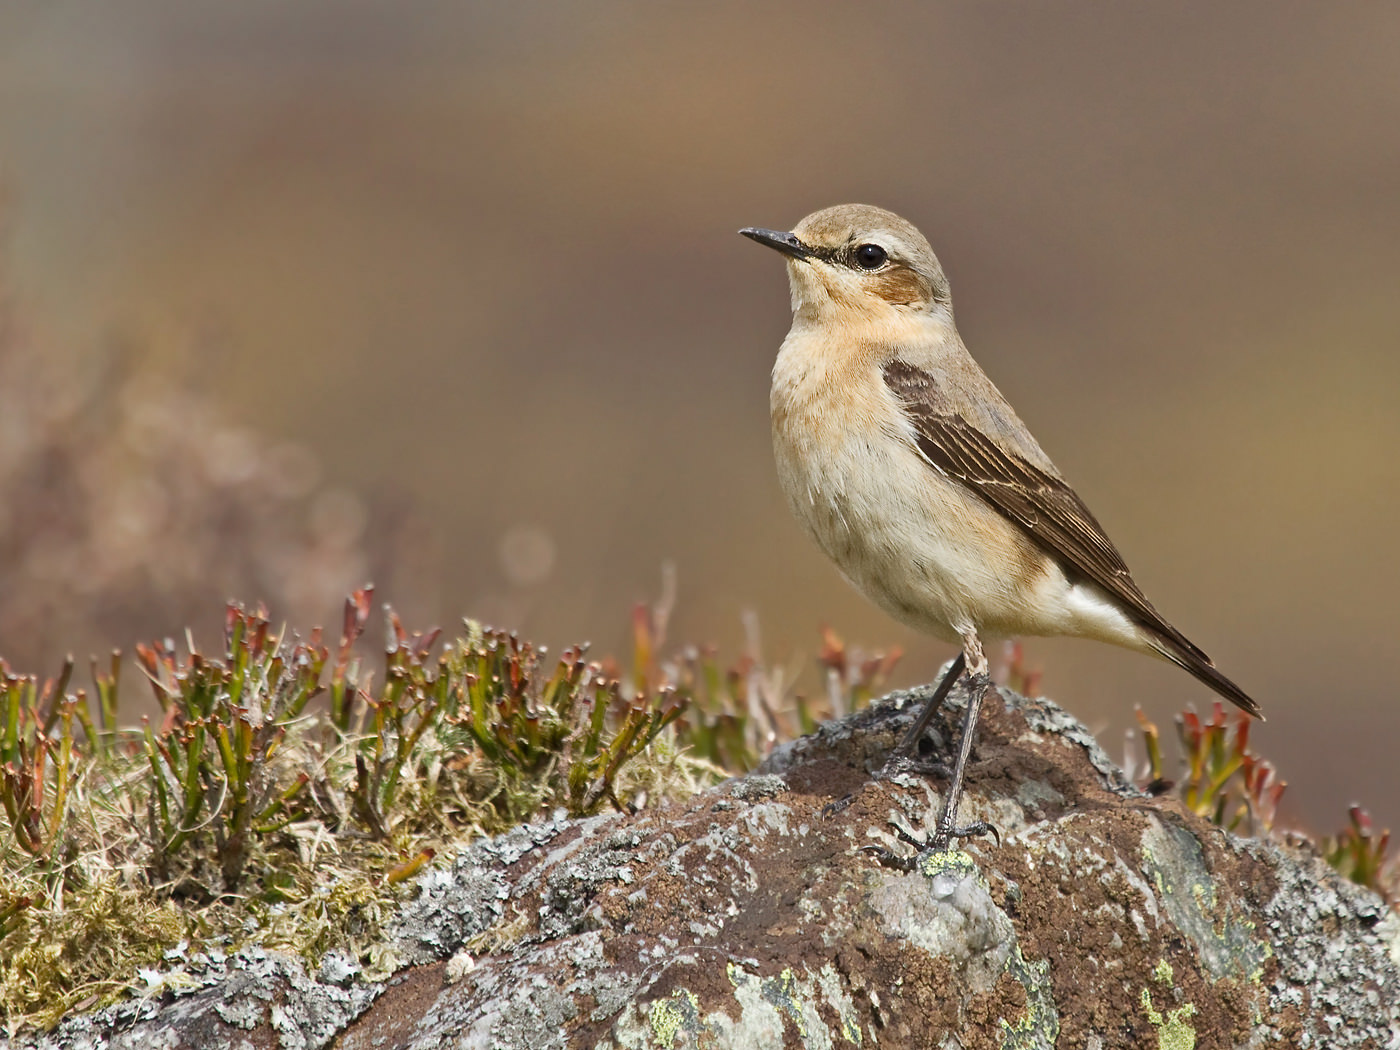 Colour Print - 2nd Place: Female Wheatear by Stephanie Cowie